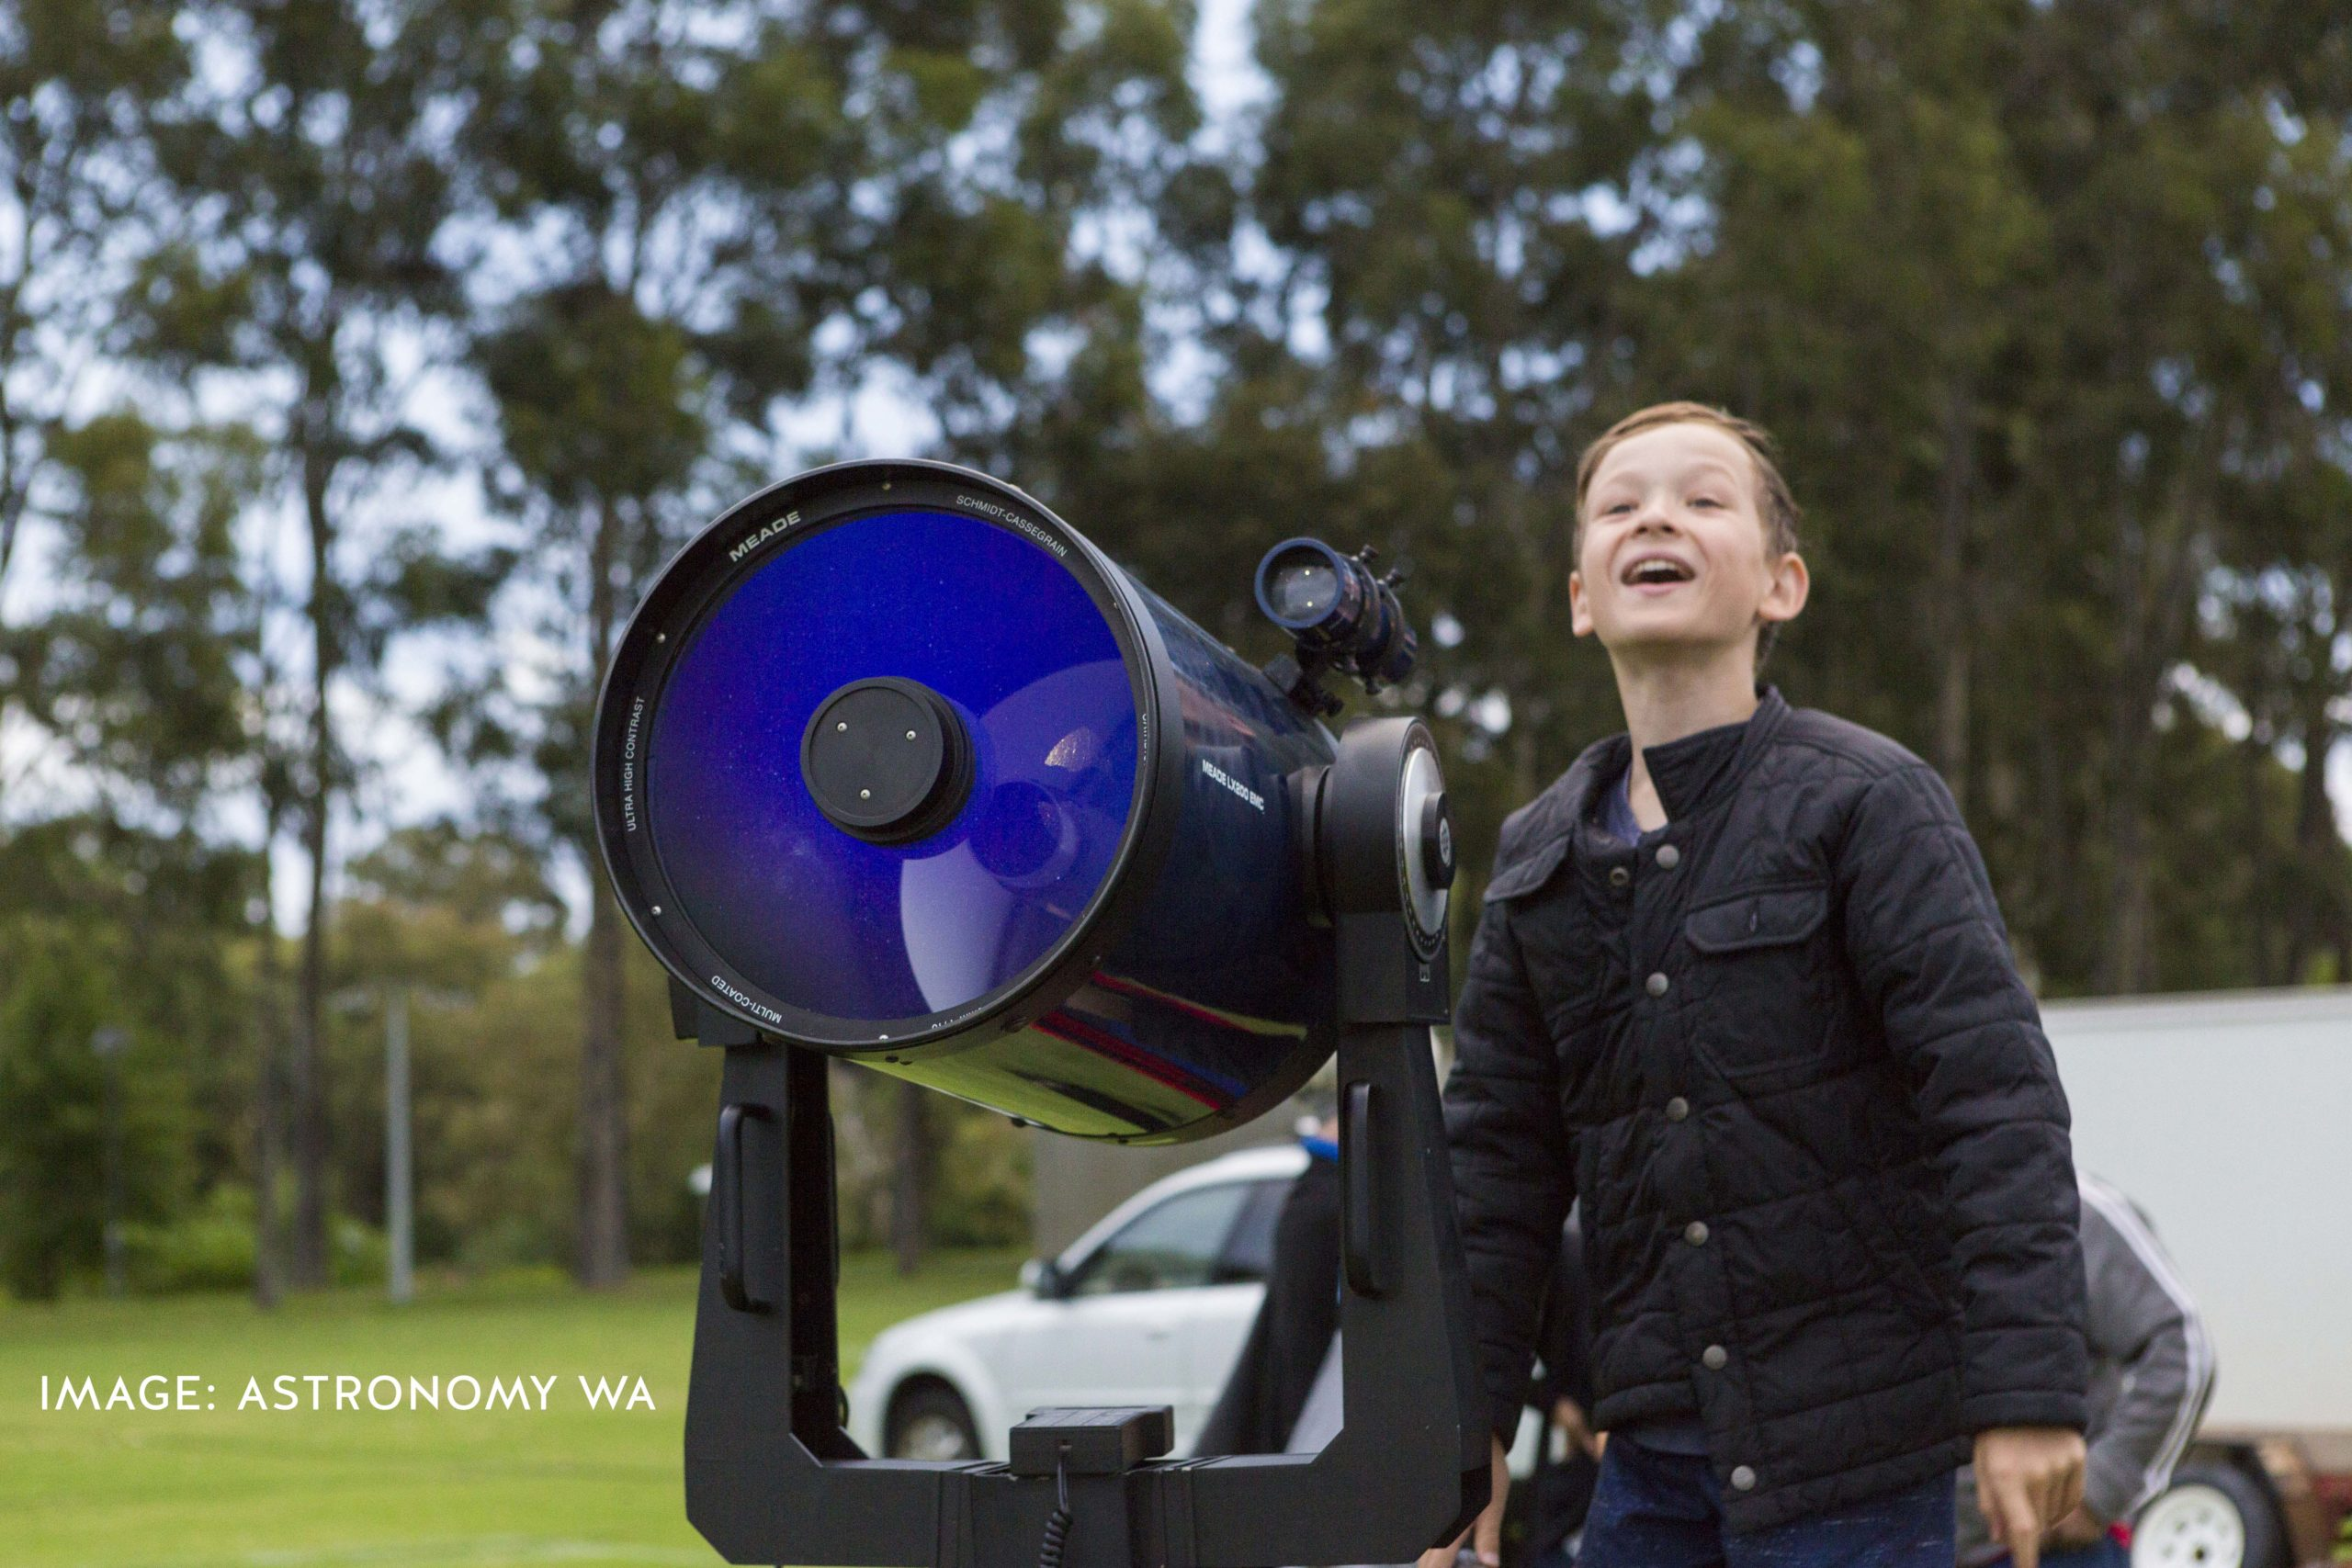 Astronomy for kids. 5 ways to get your child into astronomy